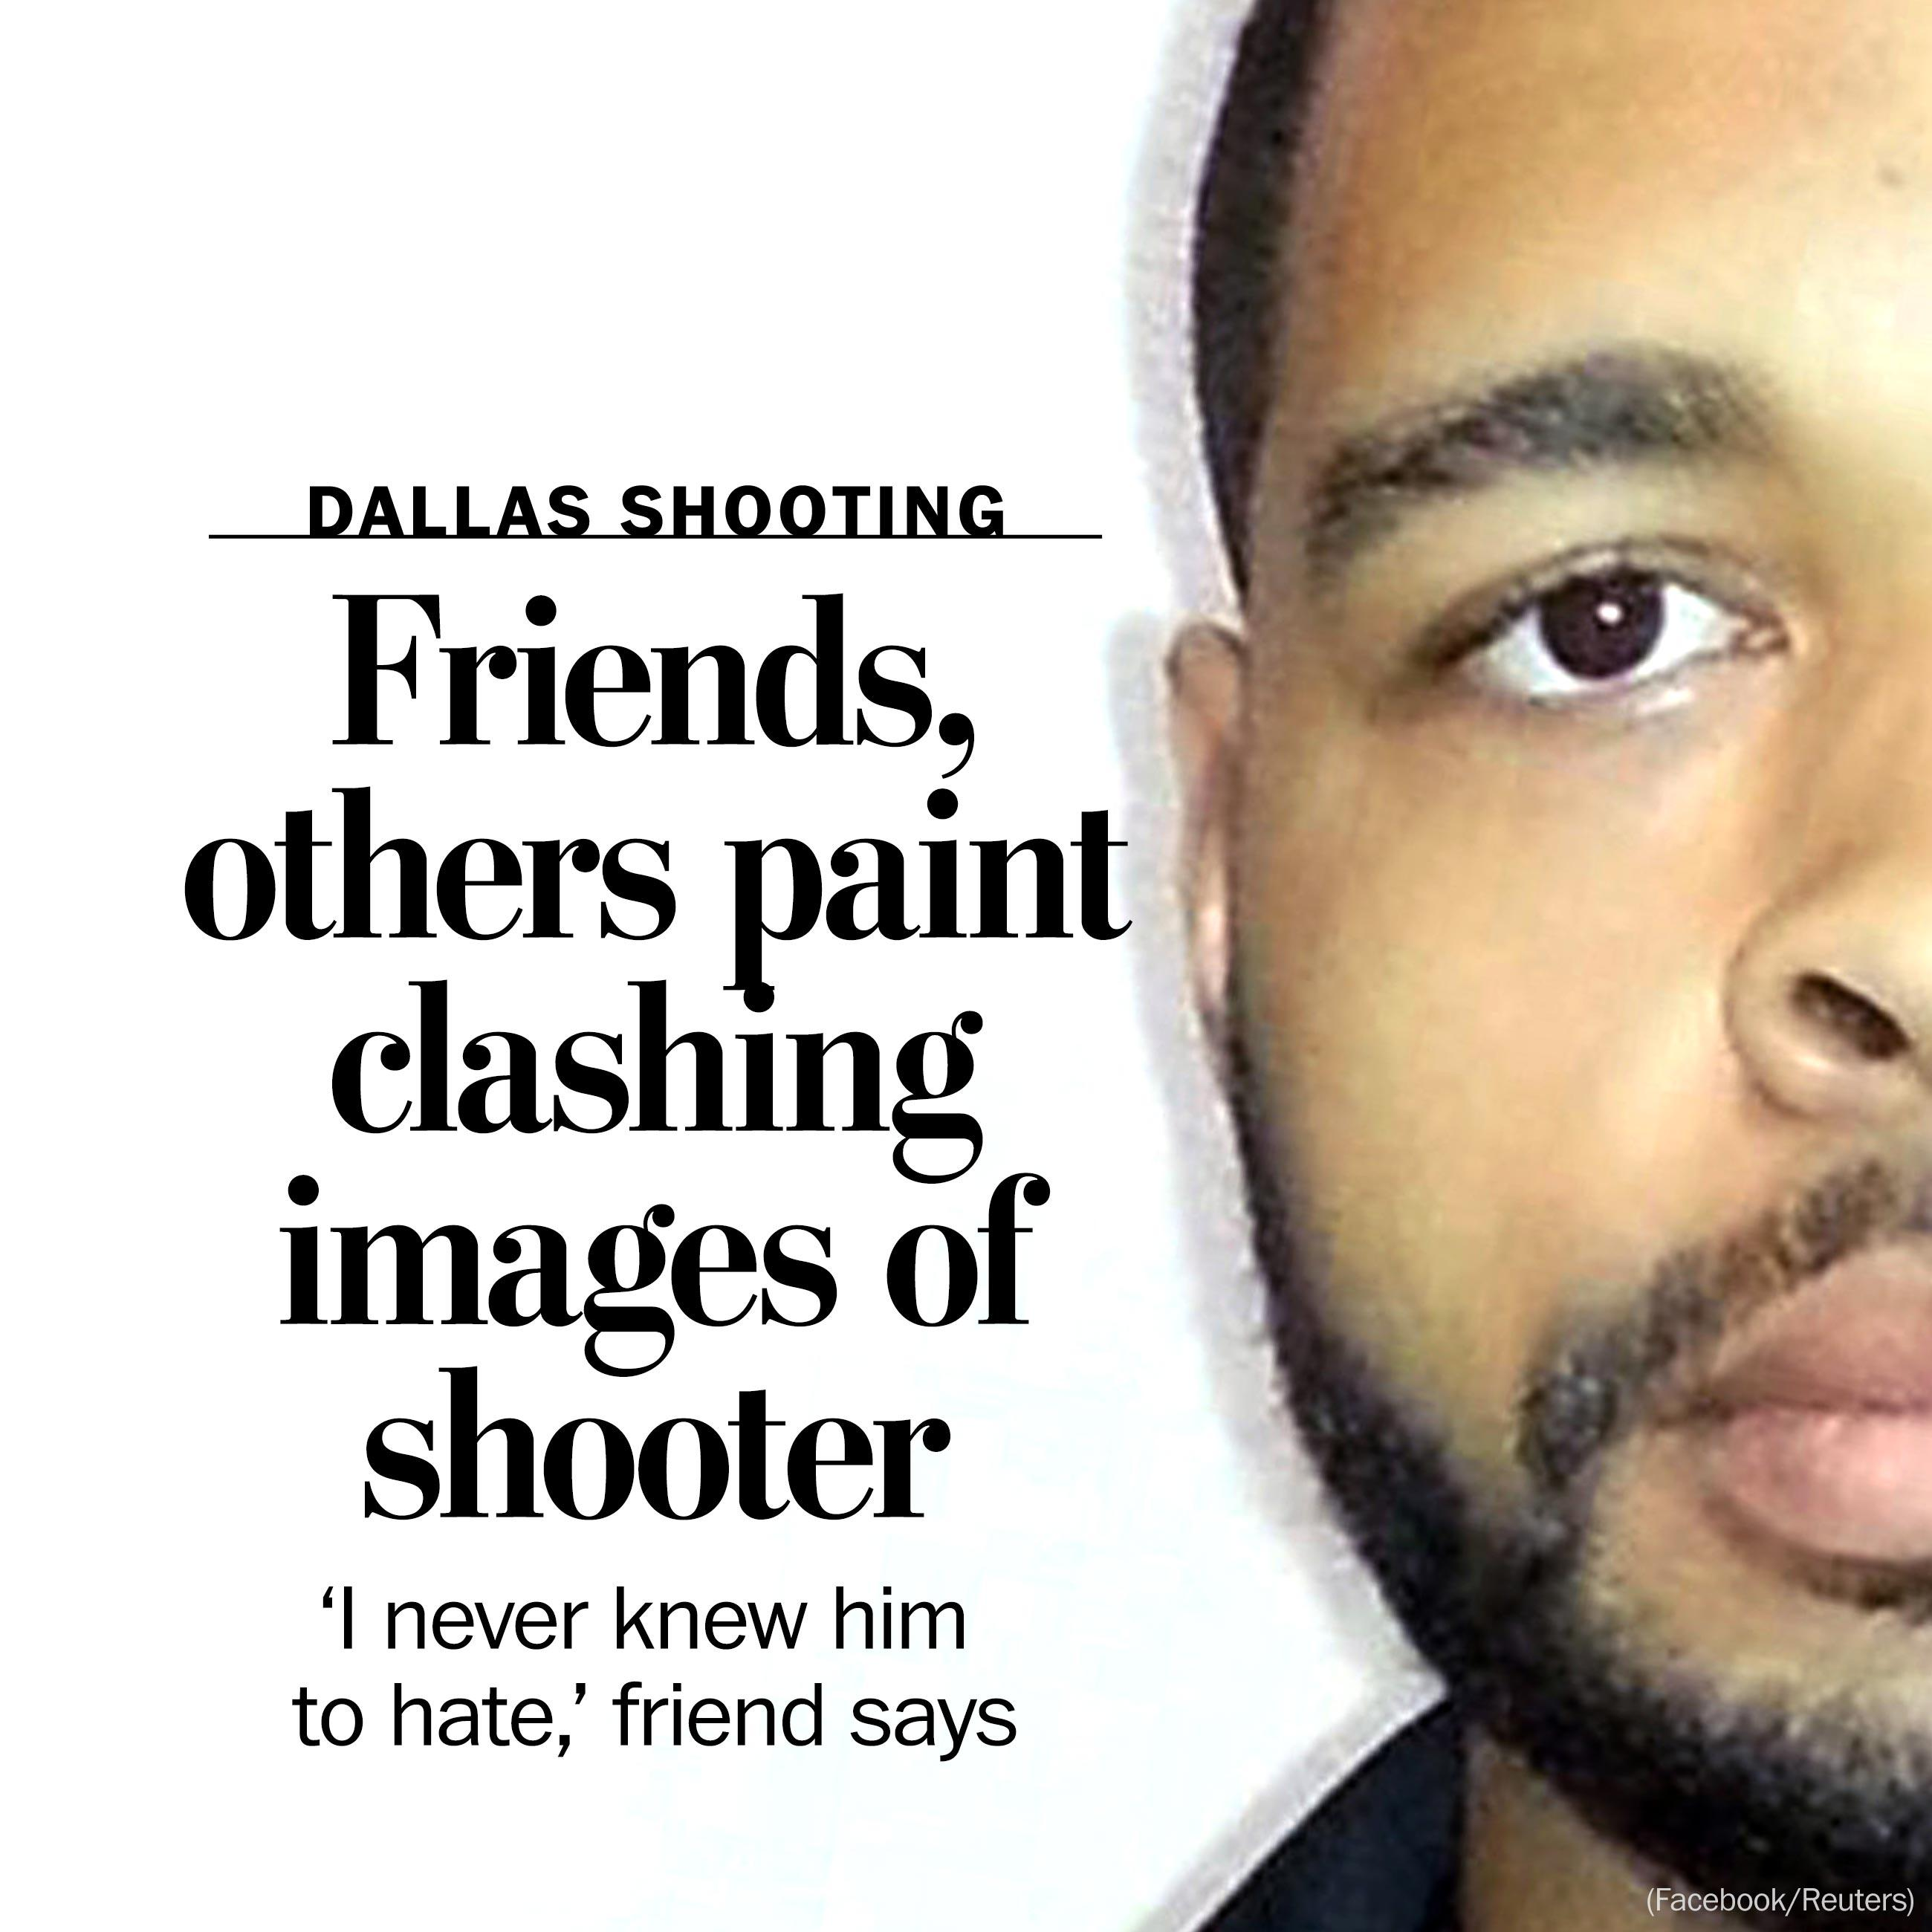 Conflicting images of Dallas shooter emerge from friends, military colleagues